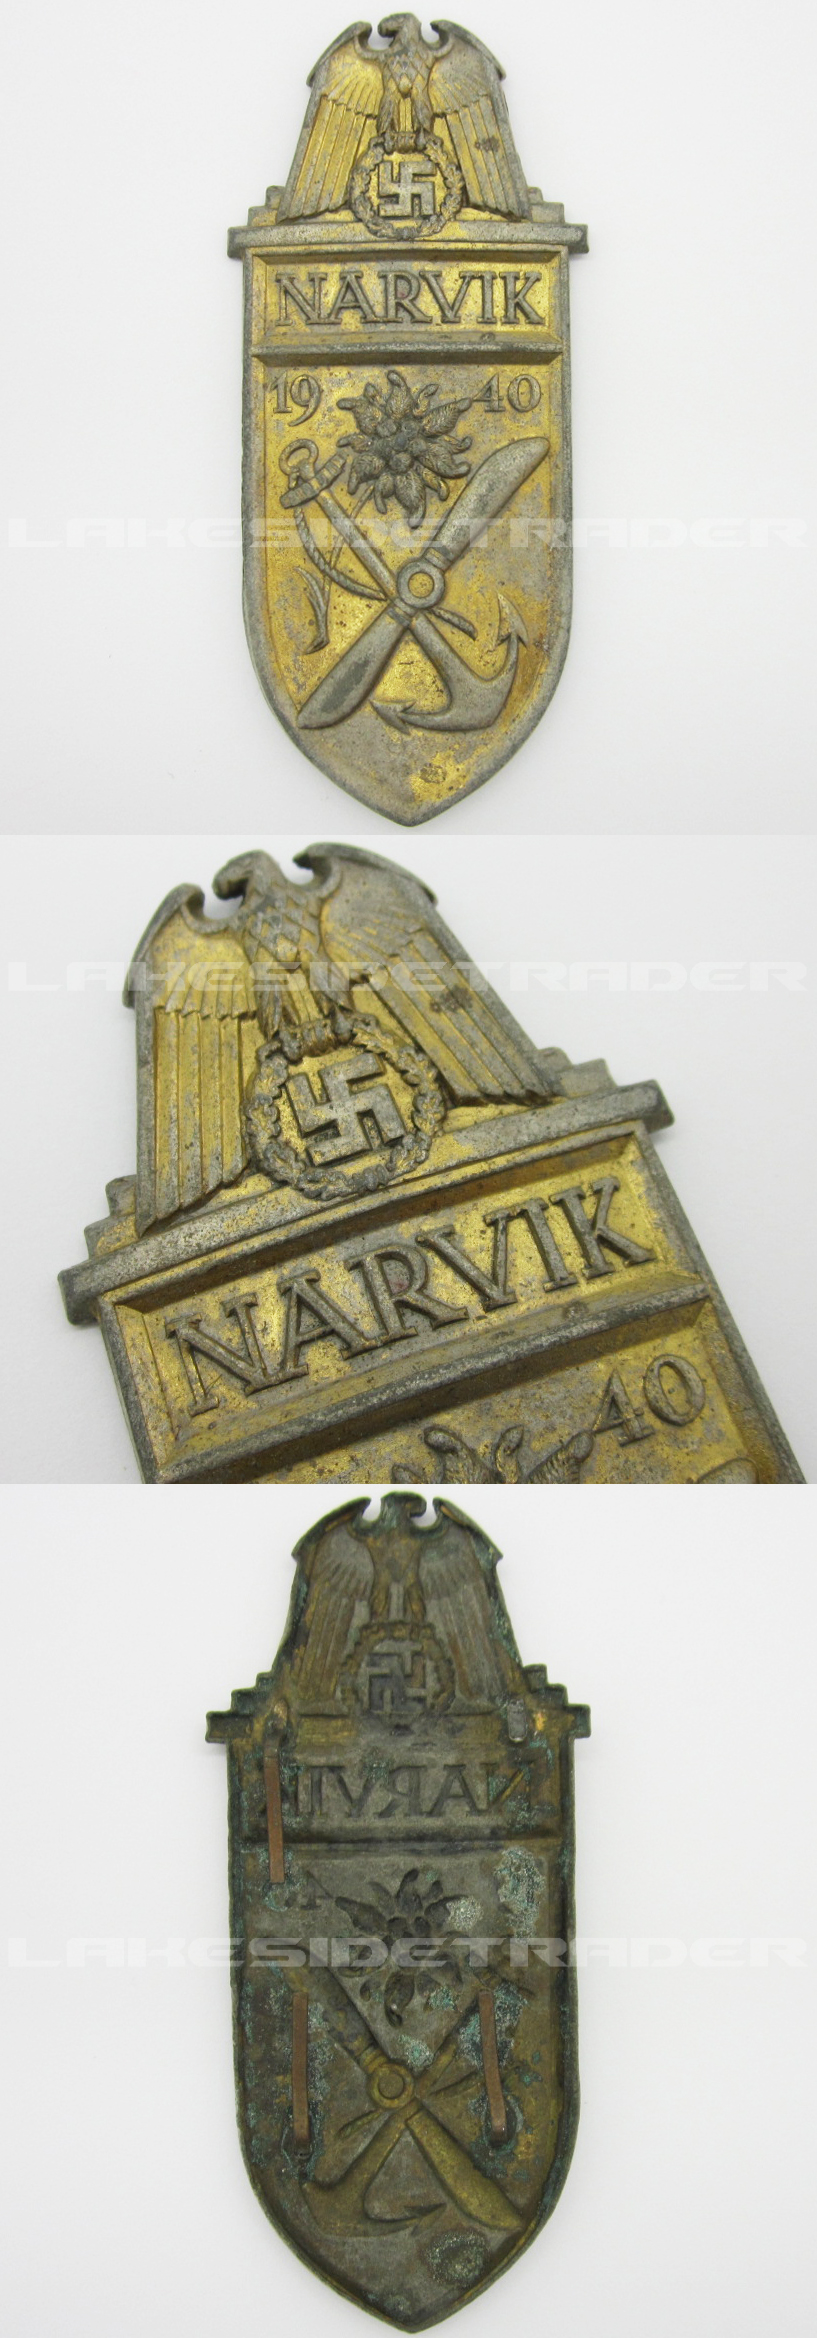 Navy Narvik Campaign Arm Shield